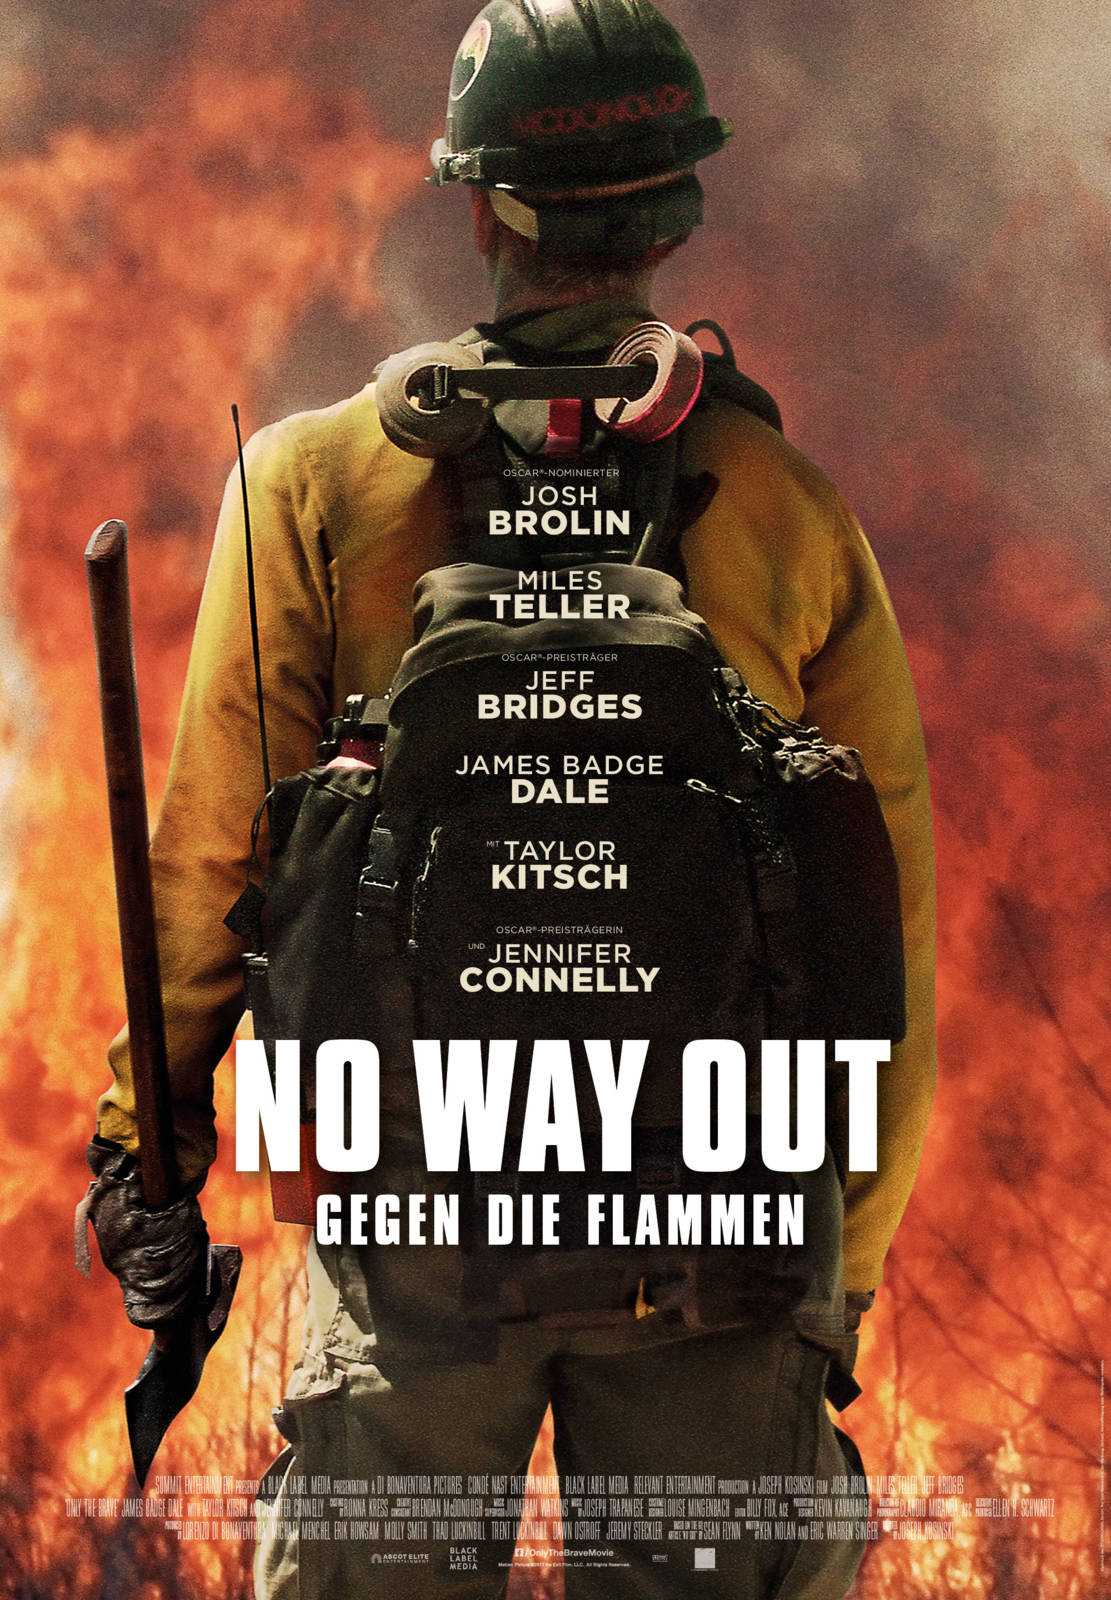 No Way Out – Gegen Die Flammen